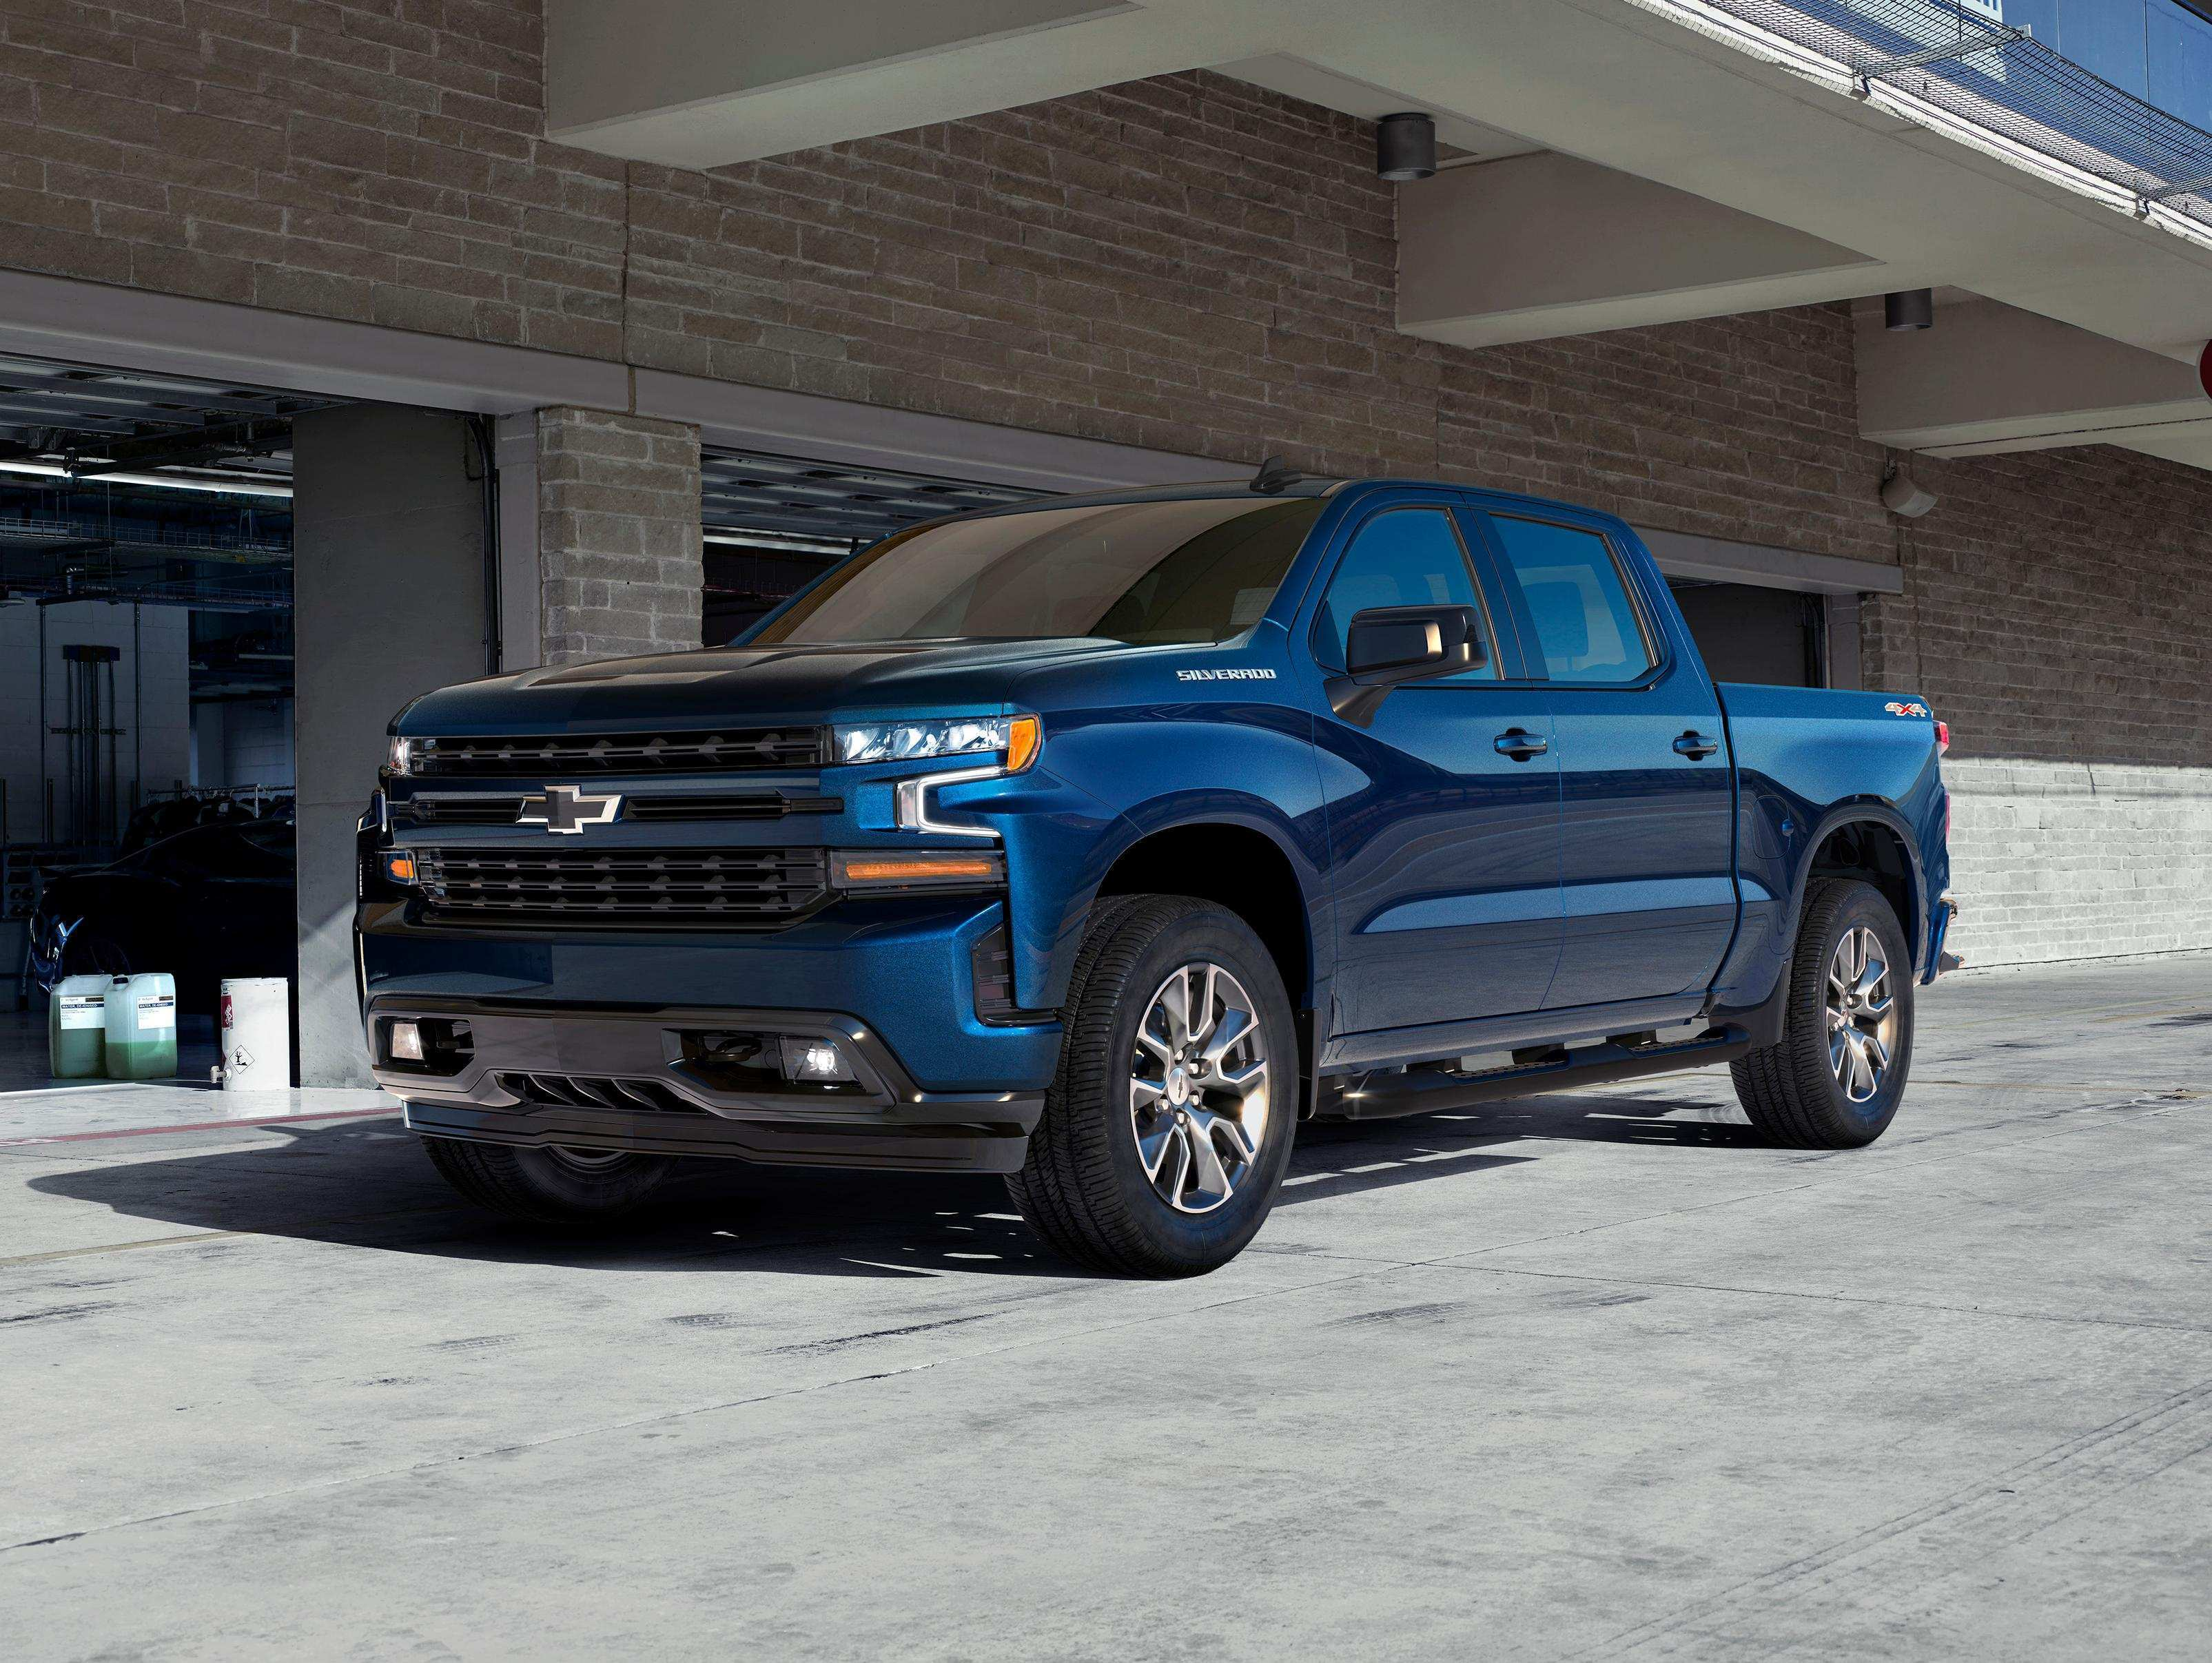 55 New 2019 Chevrolet Hd Trucks Redesign and Concept with 2019 Chevrolet Hd Trucks